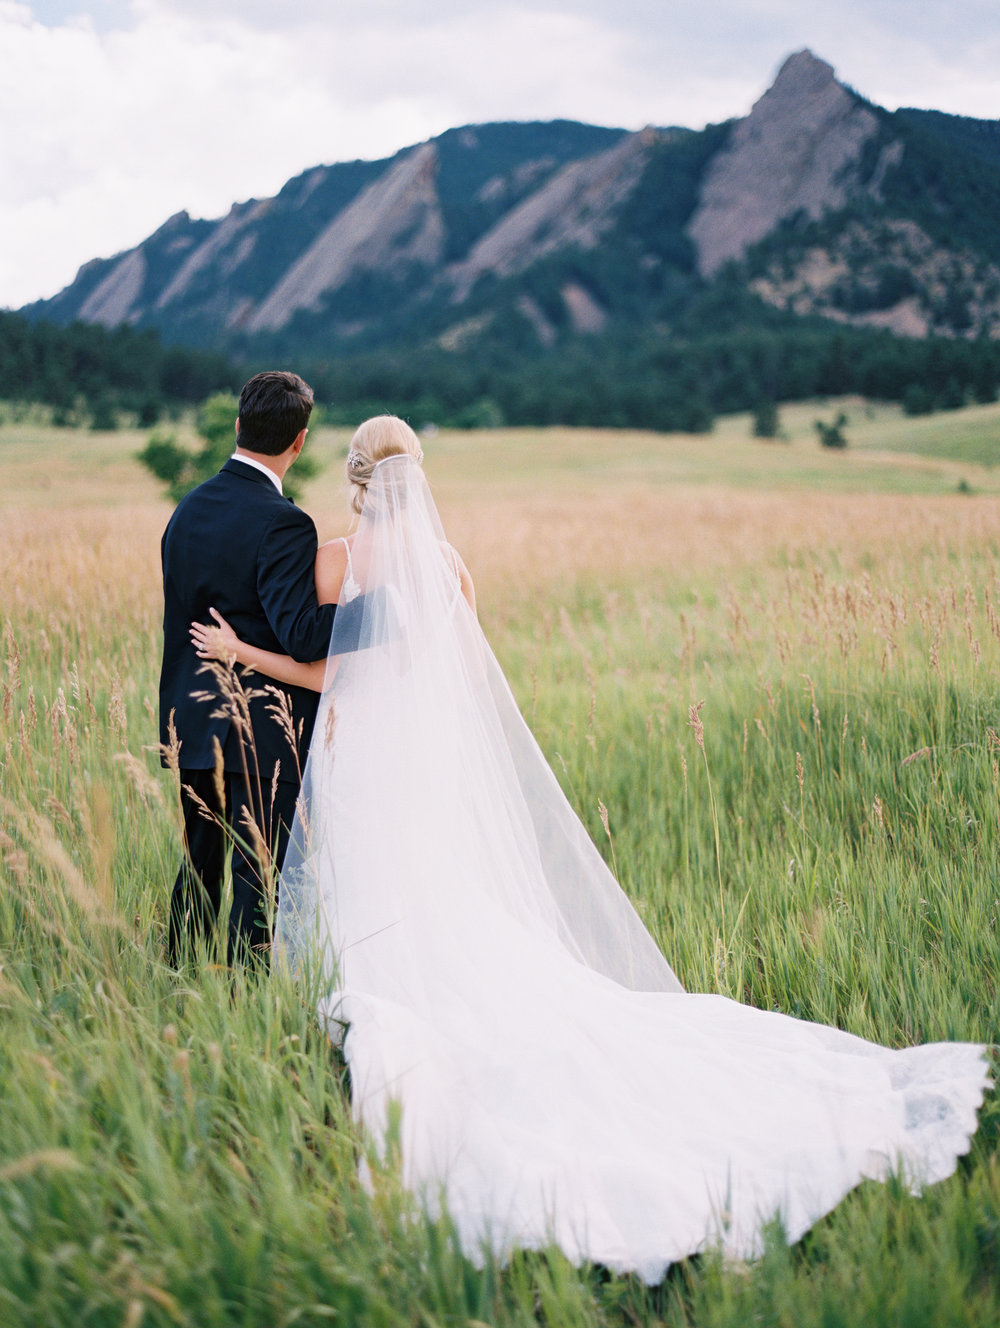 Bride Ellen | gown by Justin Alexander #9819 | headpiece by Twigs and Honey | veil by Love Veils and Accessories | all available at Little White Dress Bridal Shop in Denver | Cassidy Brooke Photography